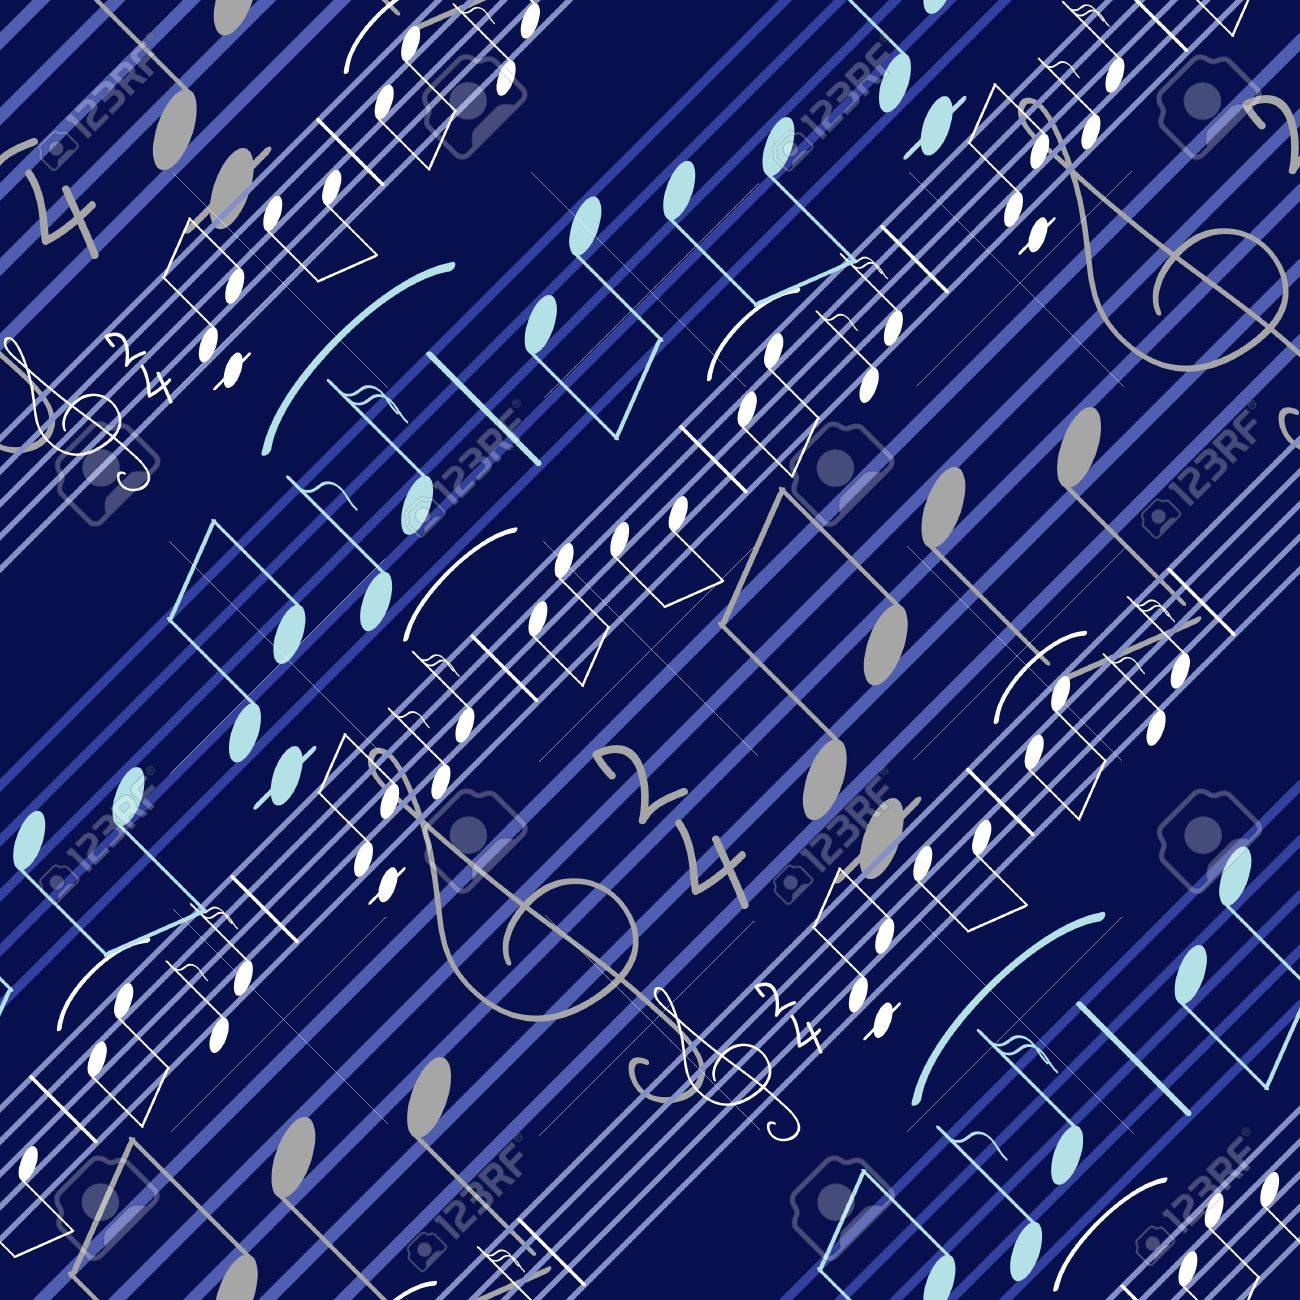 Seamless Wallpaper With Music Notes Stock Vector